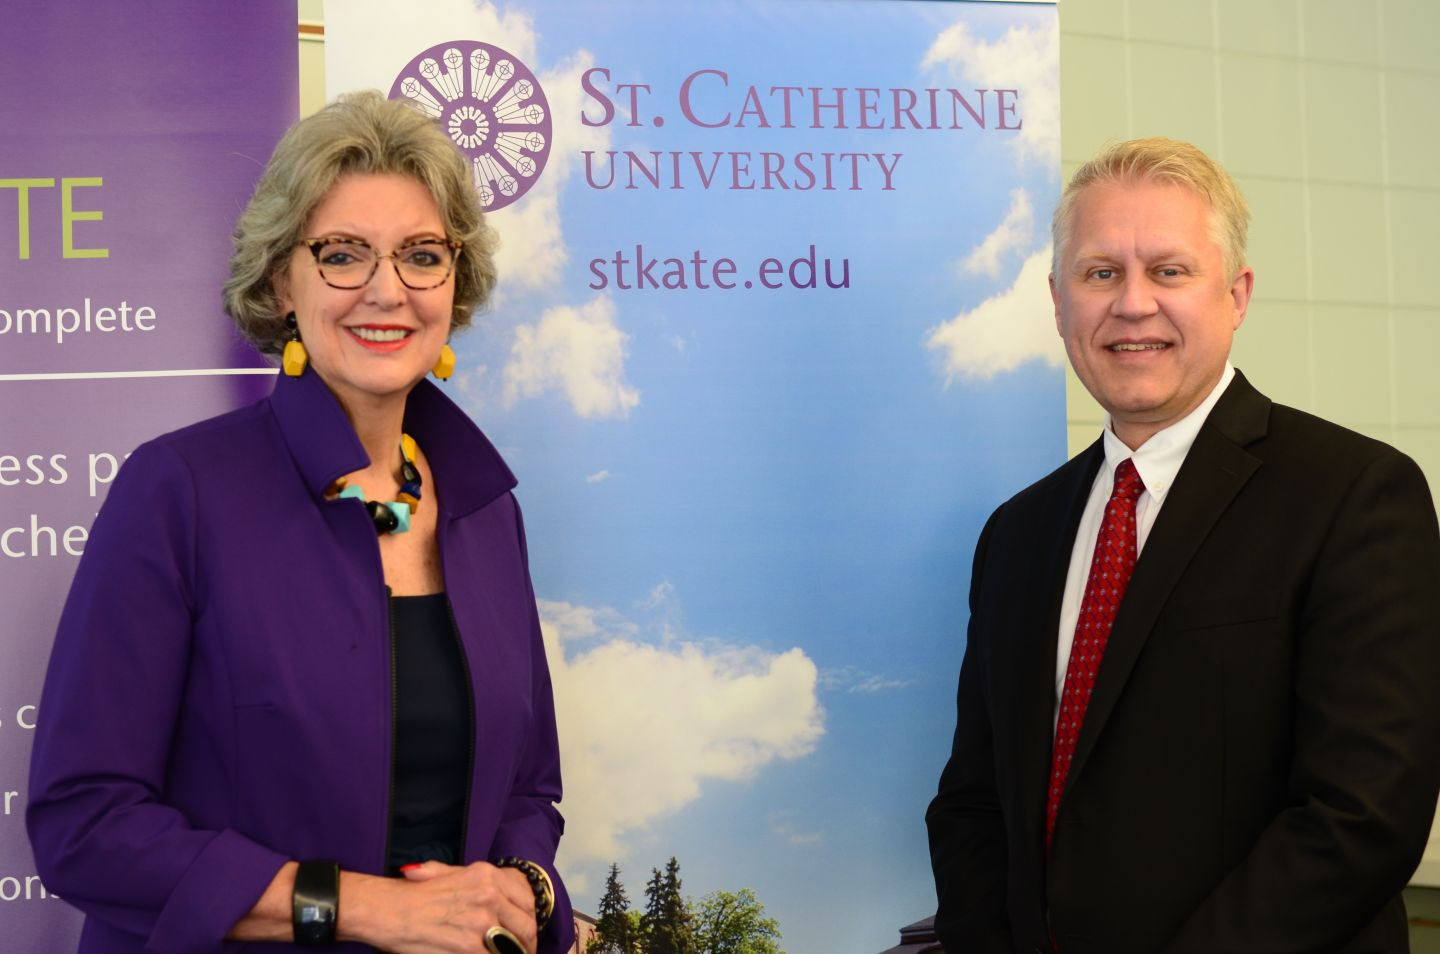 St. Catherine University president Becky Roloff '76 and Inver Hills Community College interim president Michael Berndt